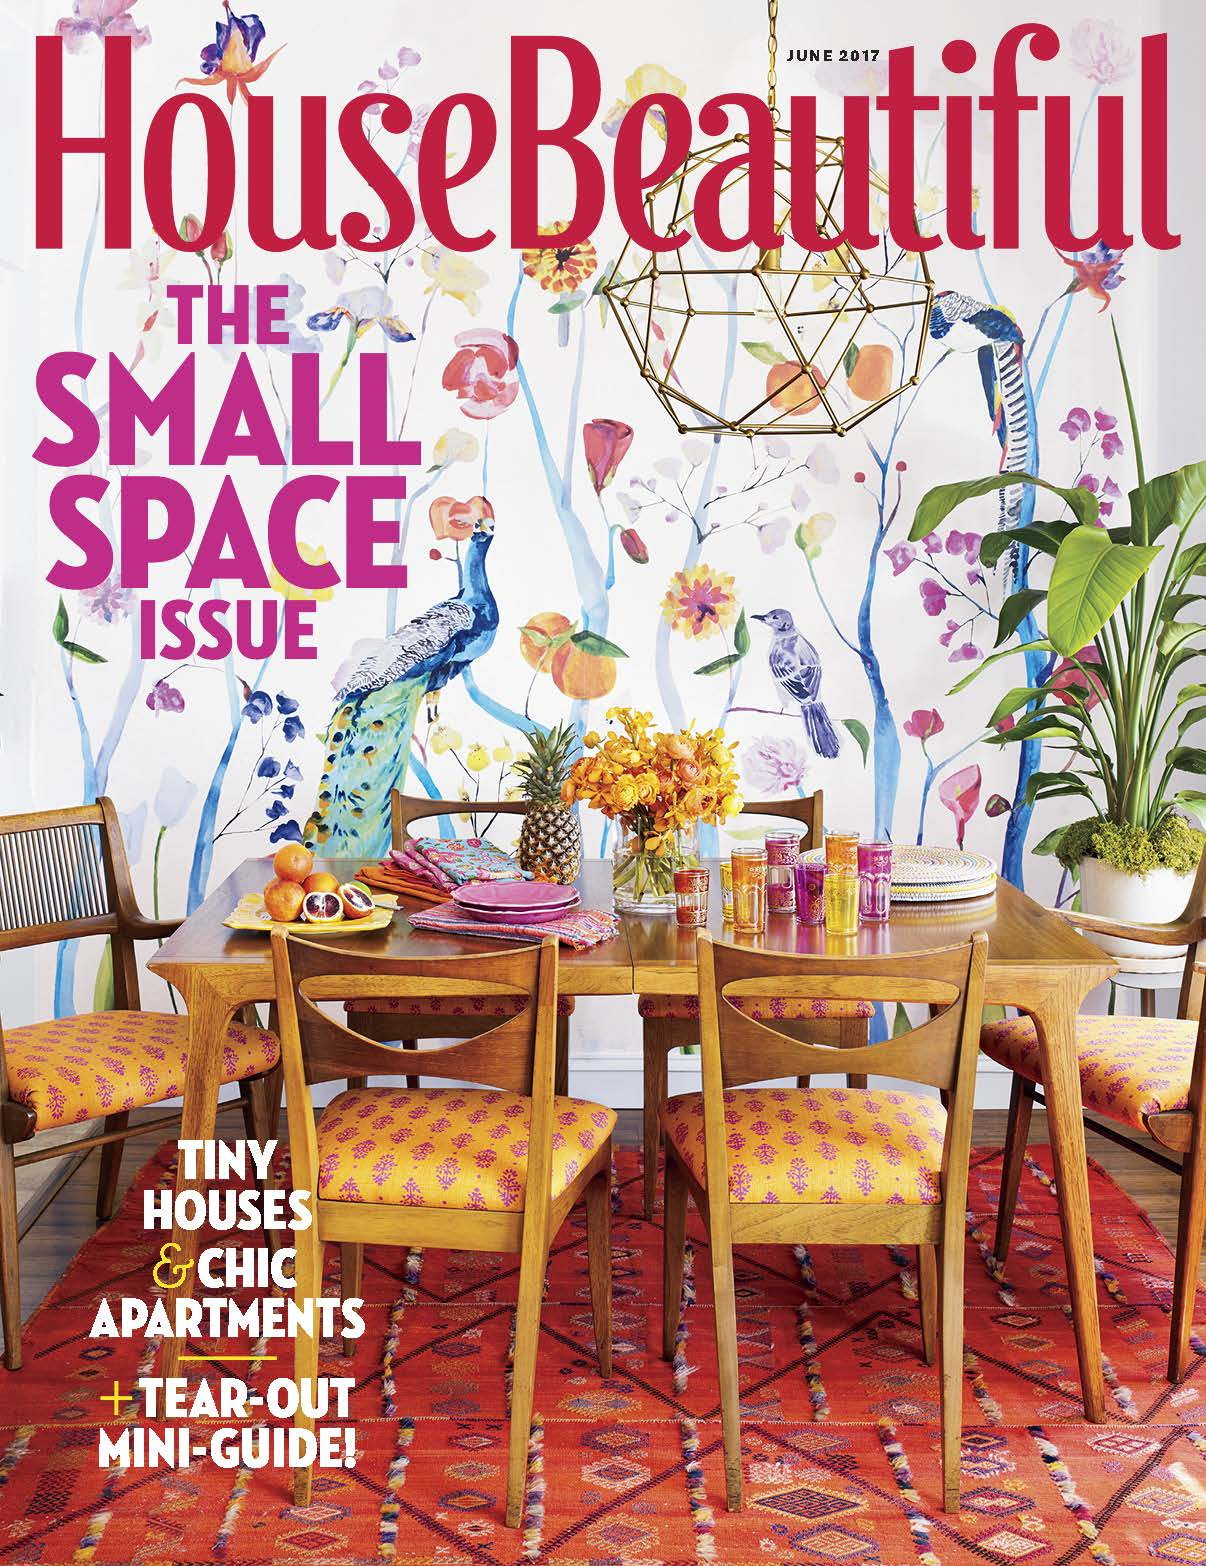 House Beautiful Magazine June 2017 Resources  Shopping Information And Product Guide